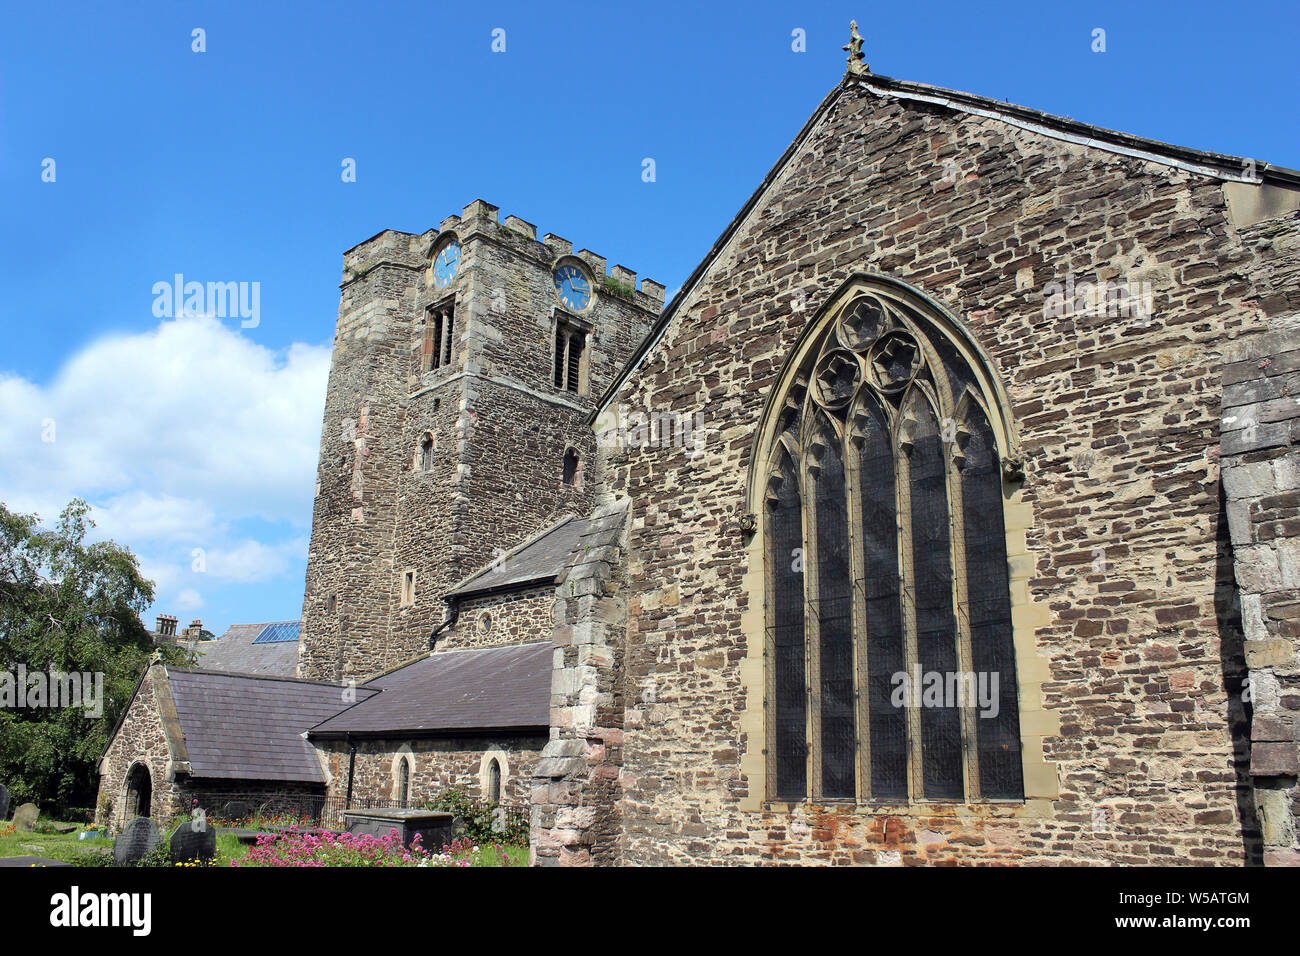 Church of St Mary and All Saints, Conwy, Wales Stock Photo